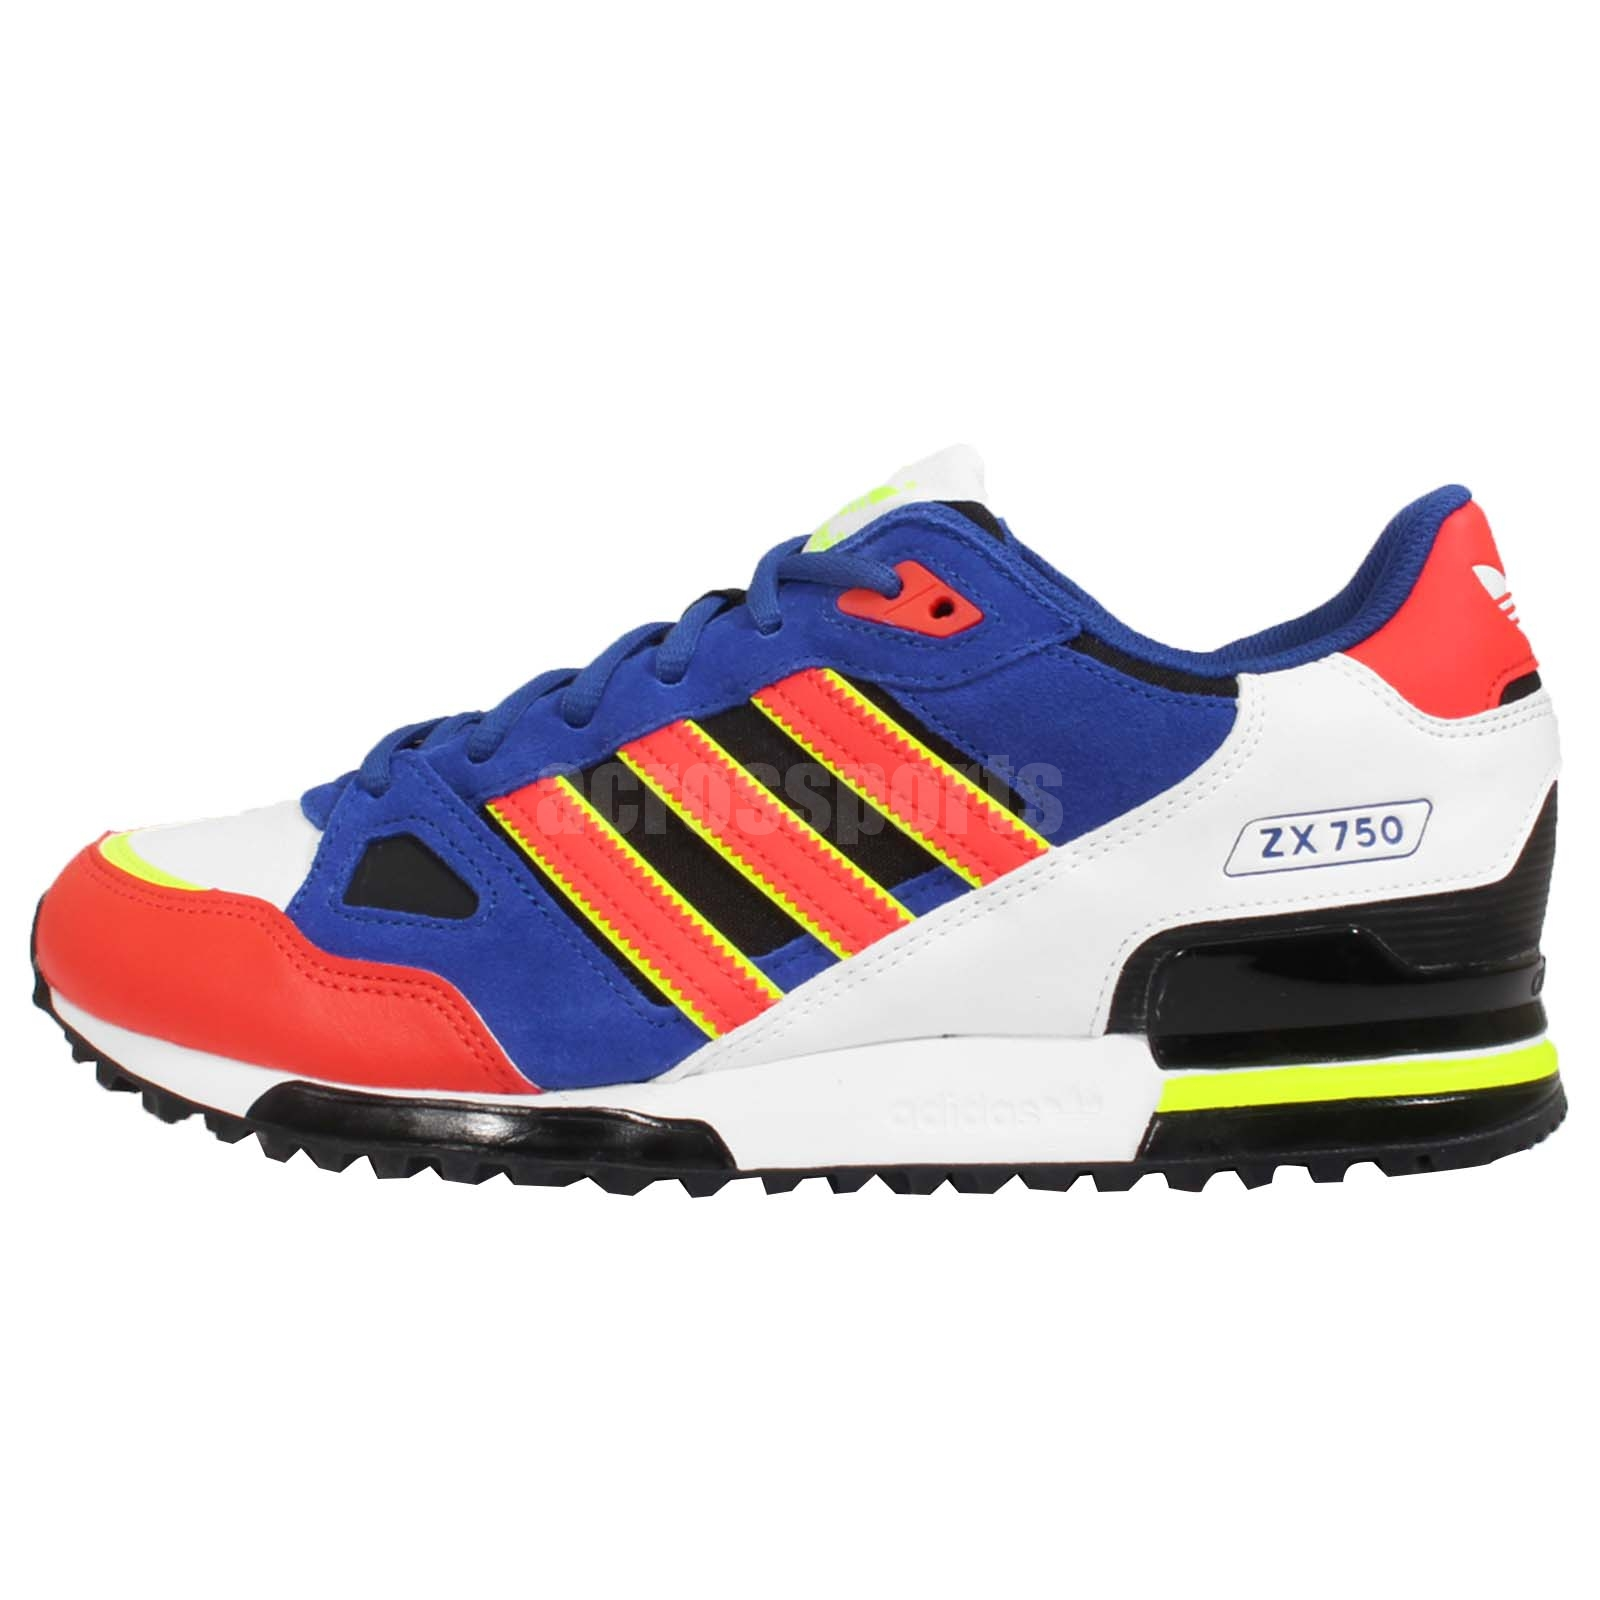 adidas originals zx 750 navy red yellow mens retro running. Black Bedroom Furniture Sets. Home Design Ideas